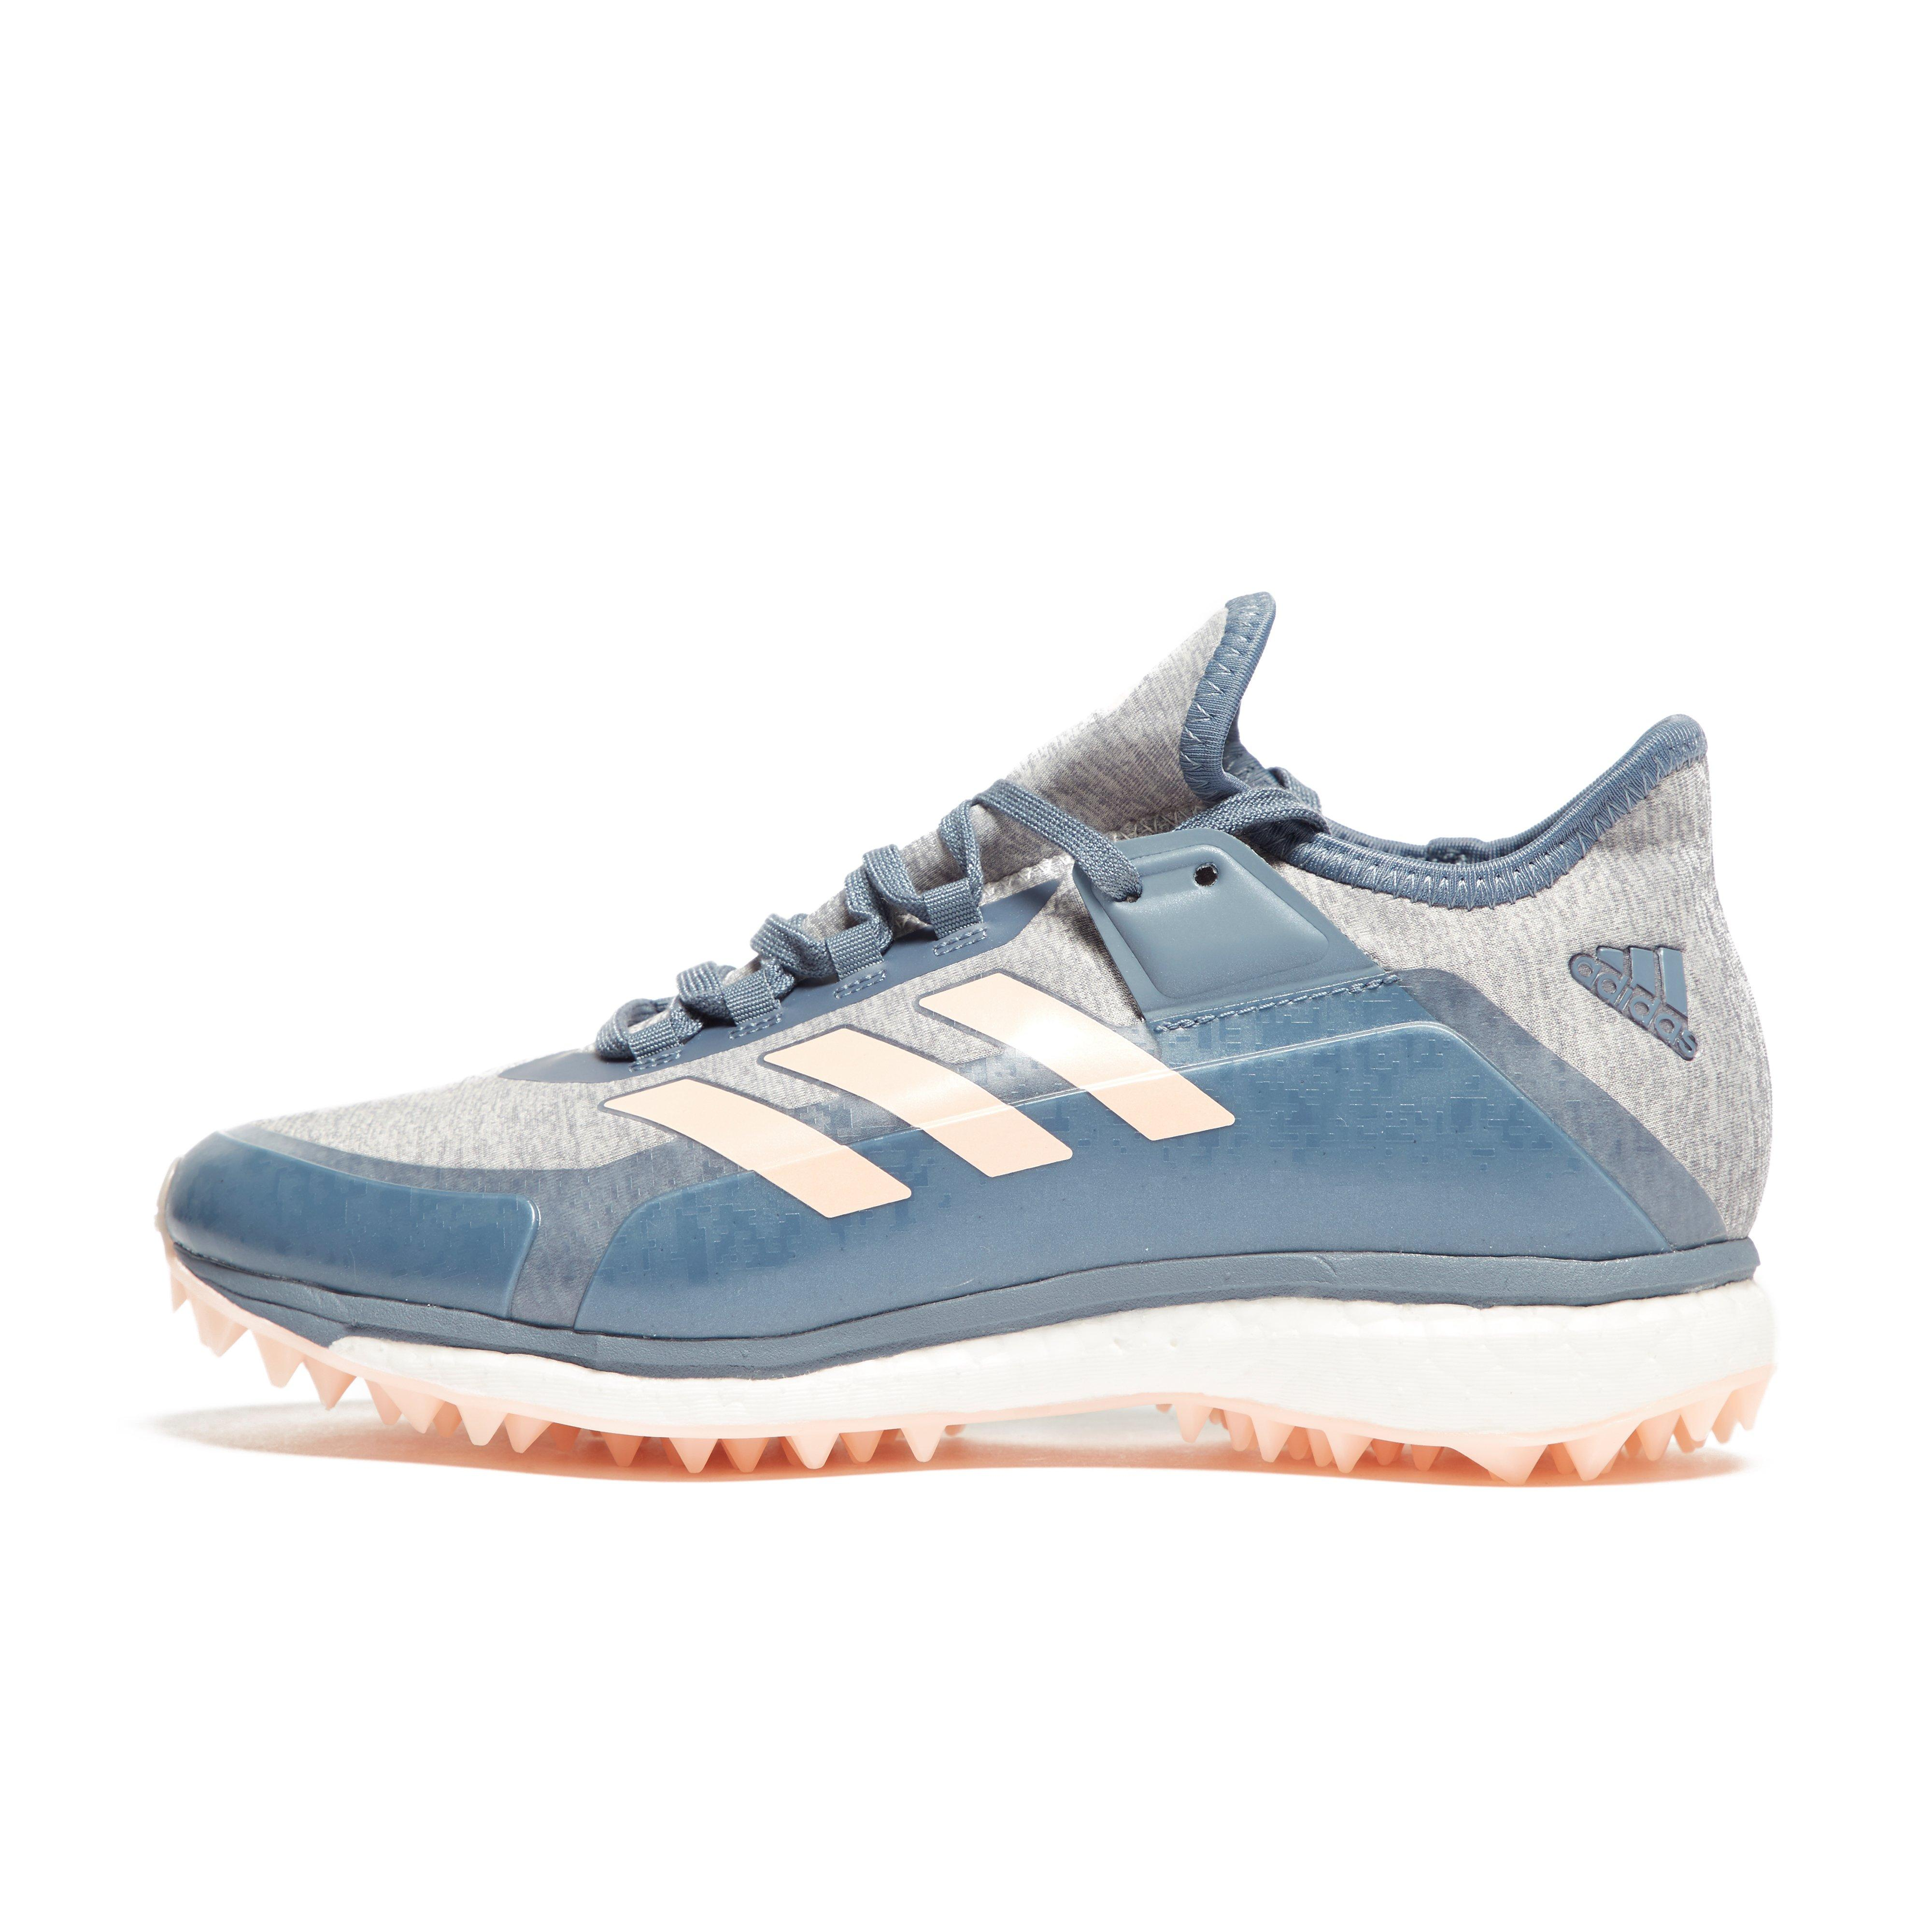 on sale 490e5 ccbe7 Details about New Adidas Fabela X Women S Field Hockey Trainers Sportswear  Shoes